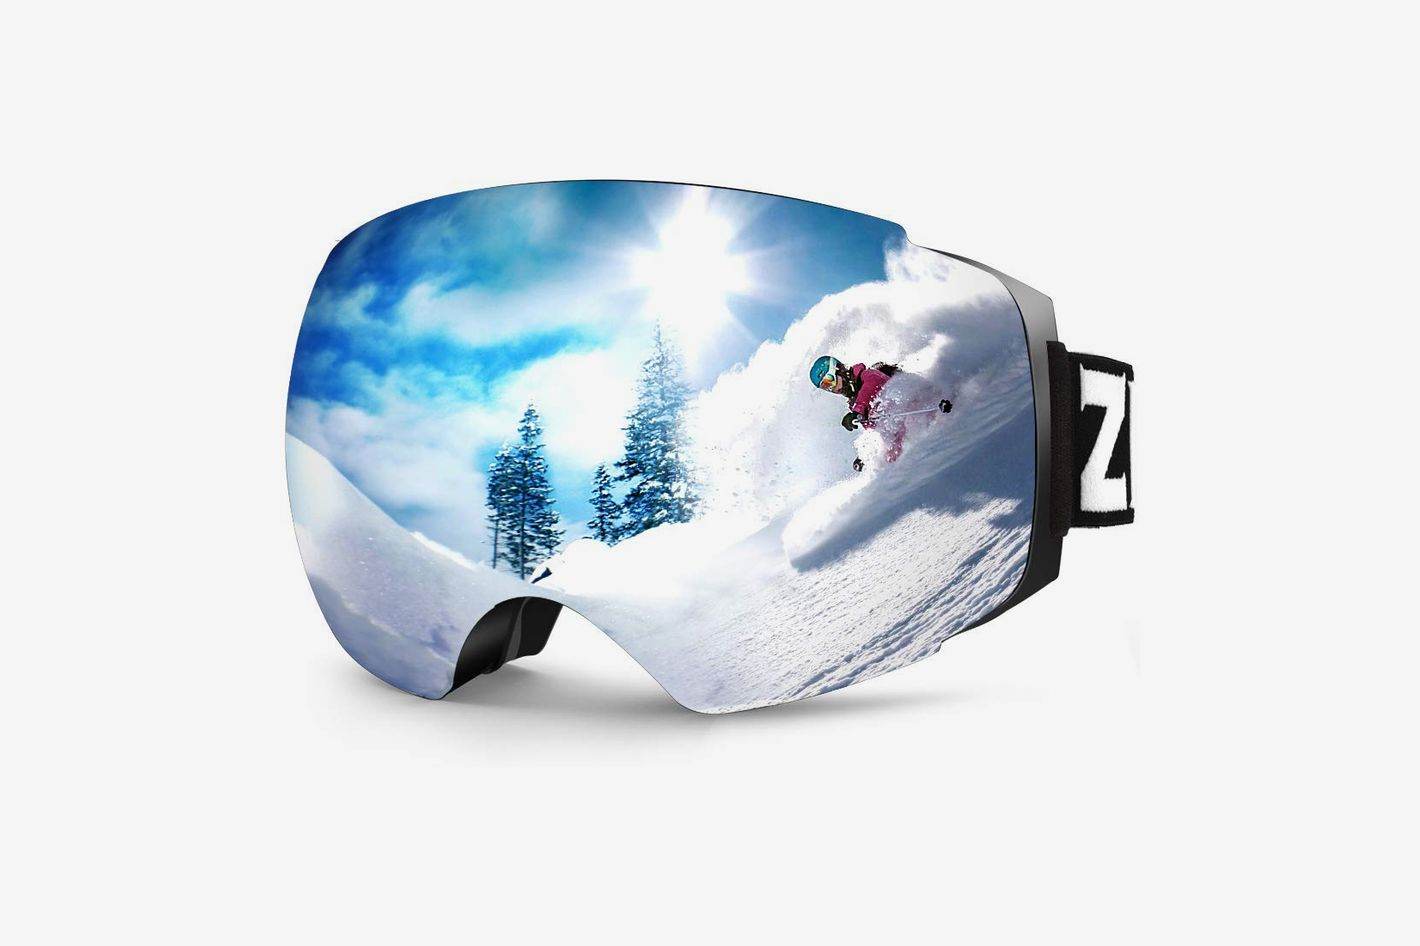 Zionor X4 Snow Goggles